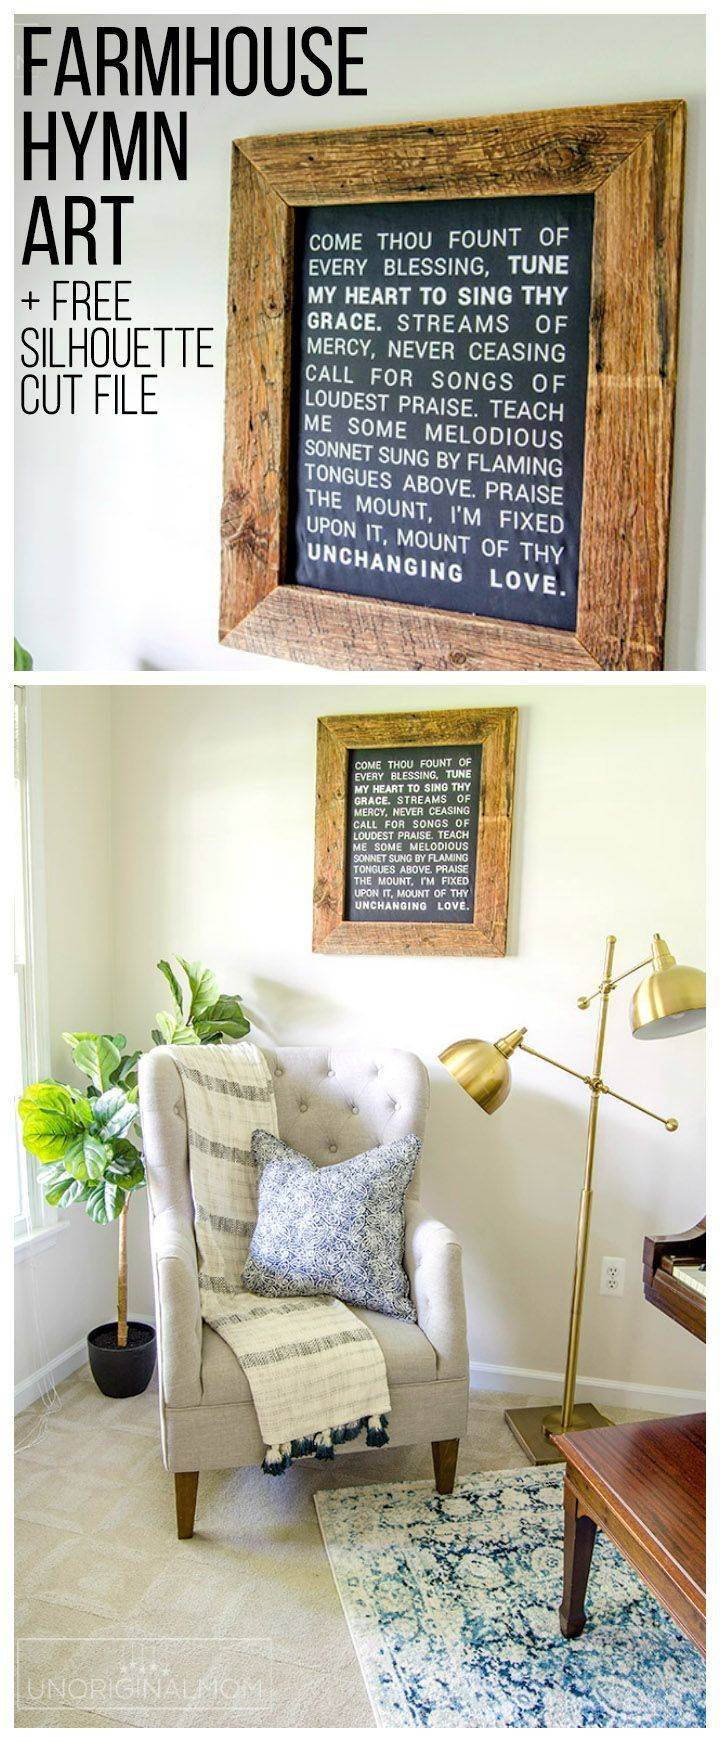 Best 25+ Farmhouse Wall Art Ideas On Pinterest | Living Room Wall In 2018 Farmhouse Wall Art (View 2 of 25)